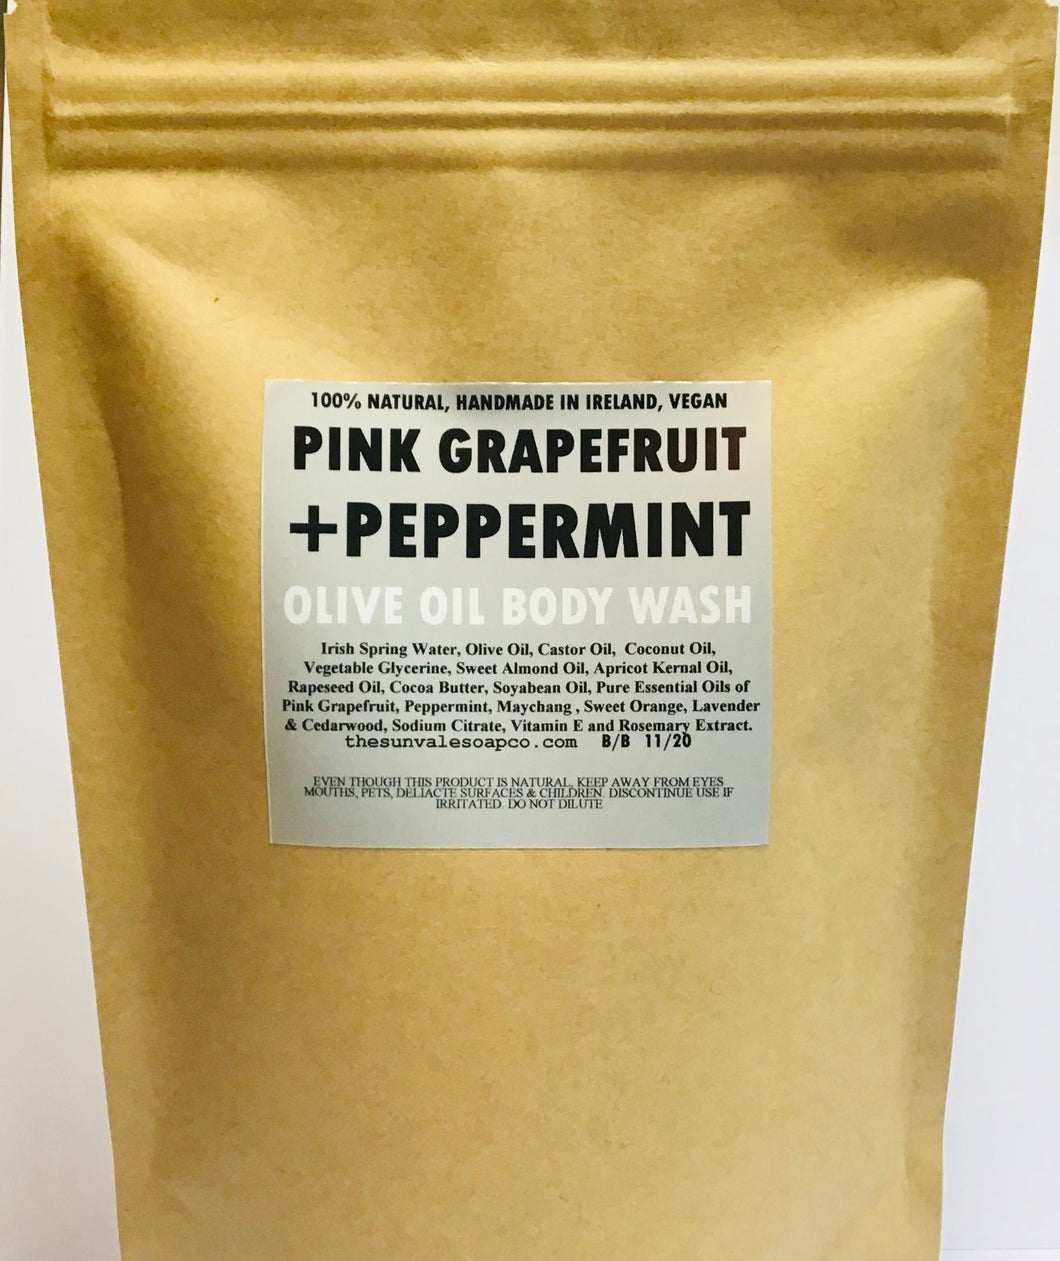 Pink Grapefruit And Peppermint Olive Oil Body Wash Refill Pouch